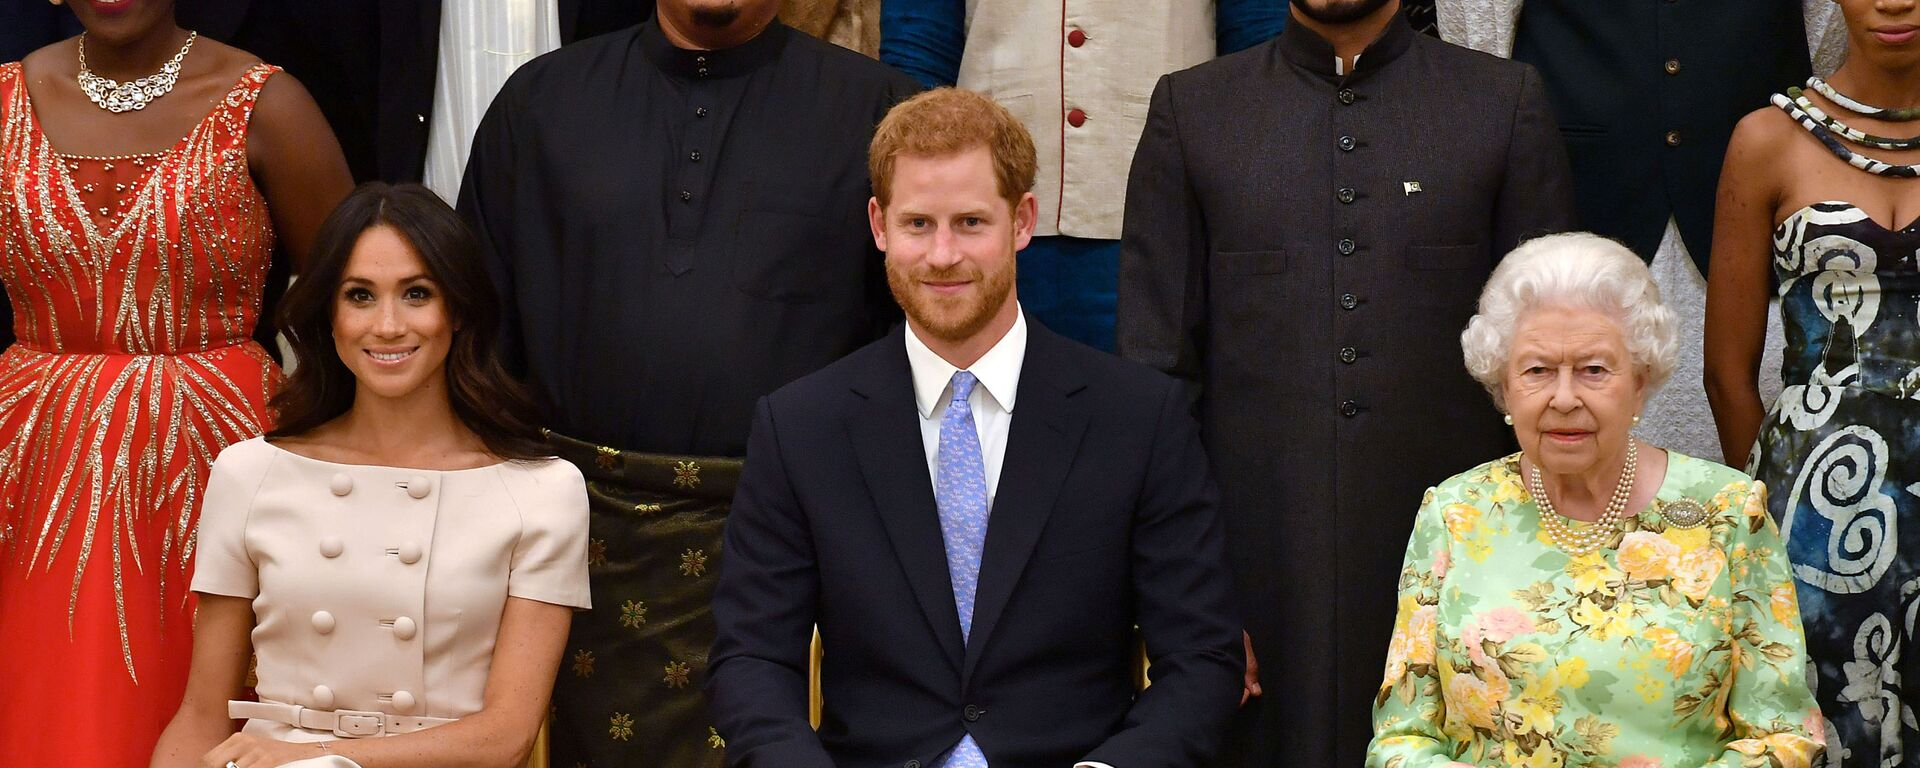 FILE PHOTO: Britain's Queen Elizabeth, Prince Harry and Meghan, the Duchess of Sussex, pose for a picture at in London, Britain June 26, 2018. John Stillwell/Pool via Reuters/File Photo - Sputnik Türkiye, 1920, 23.08.2021